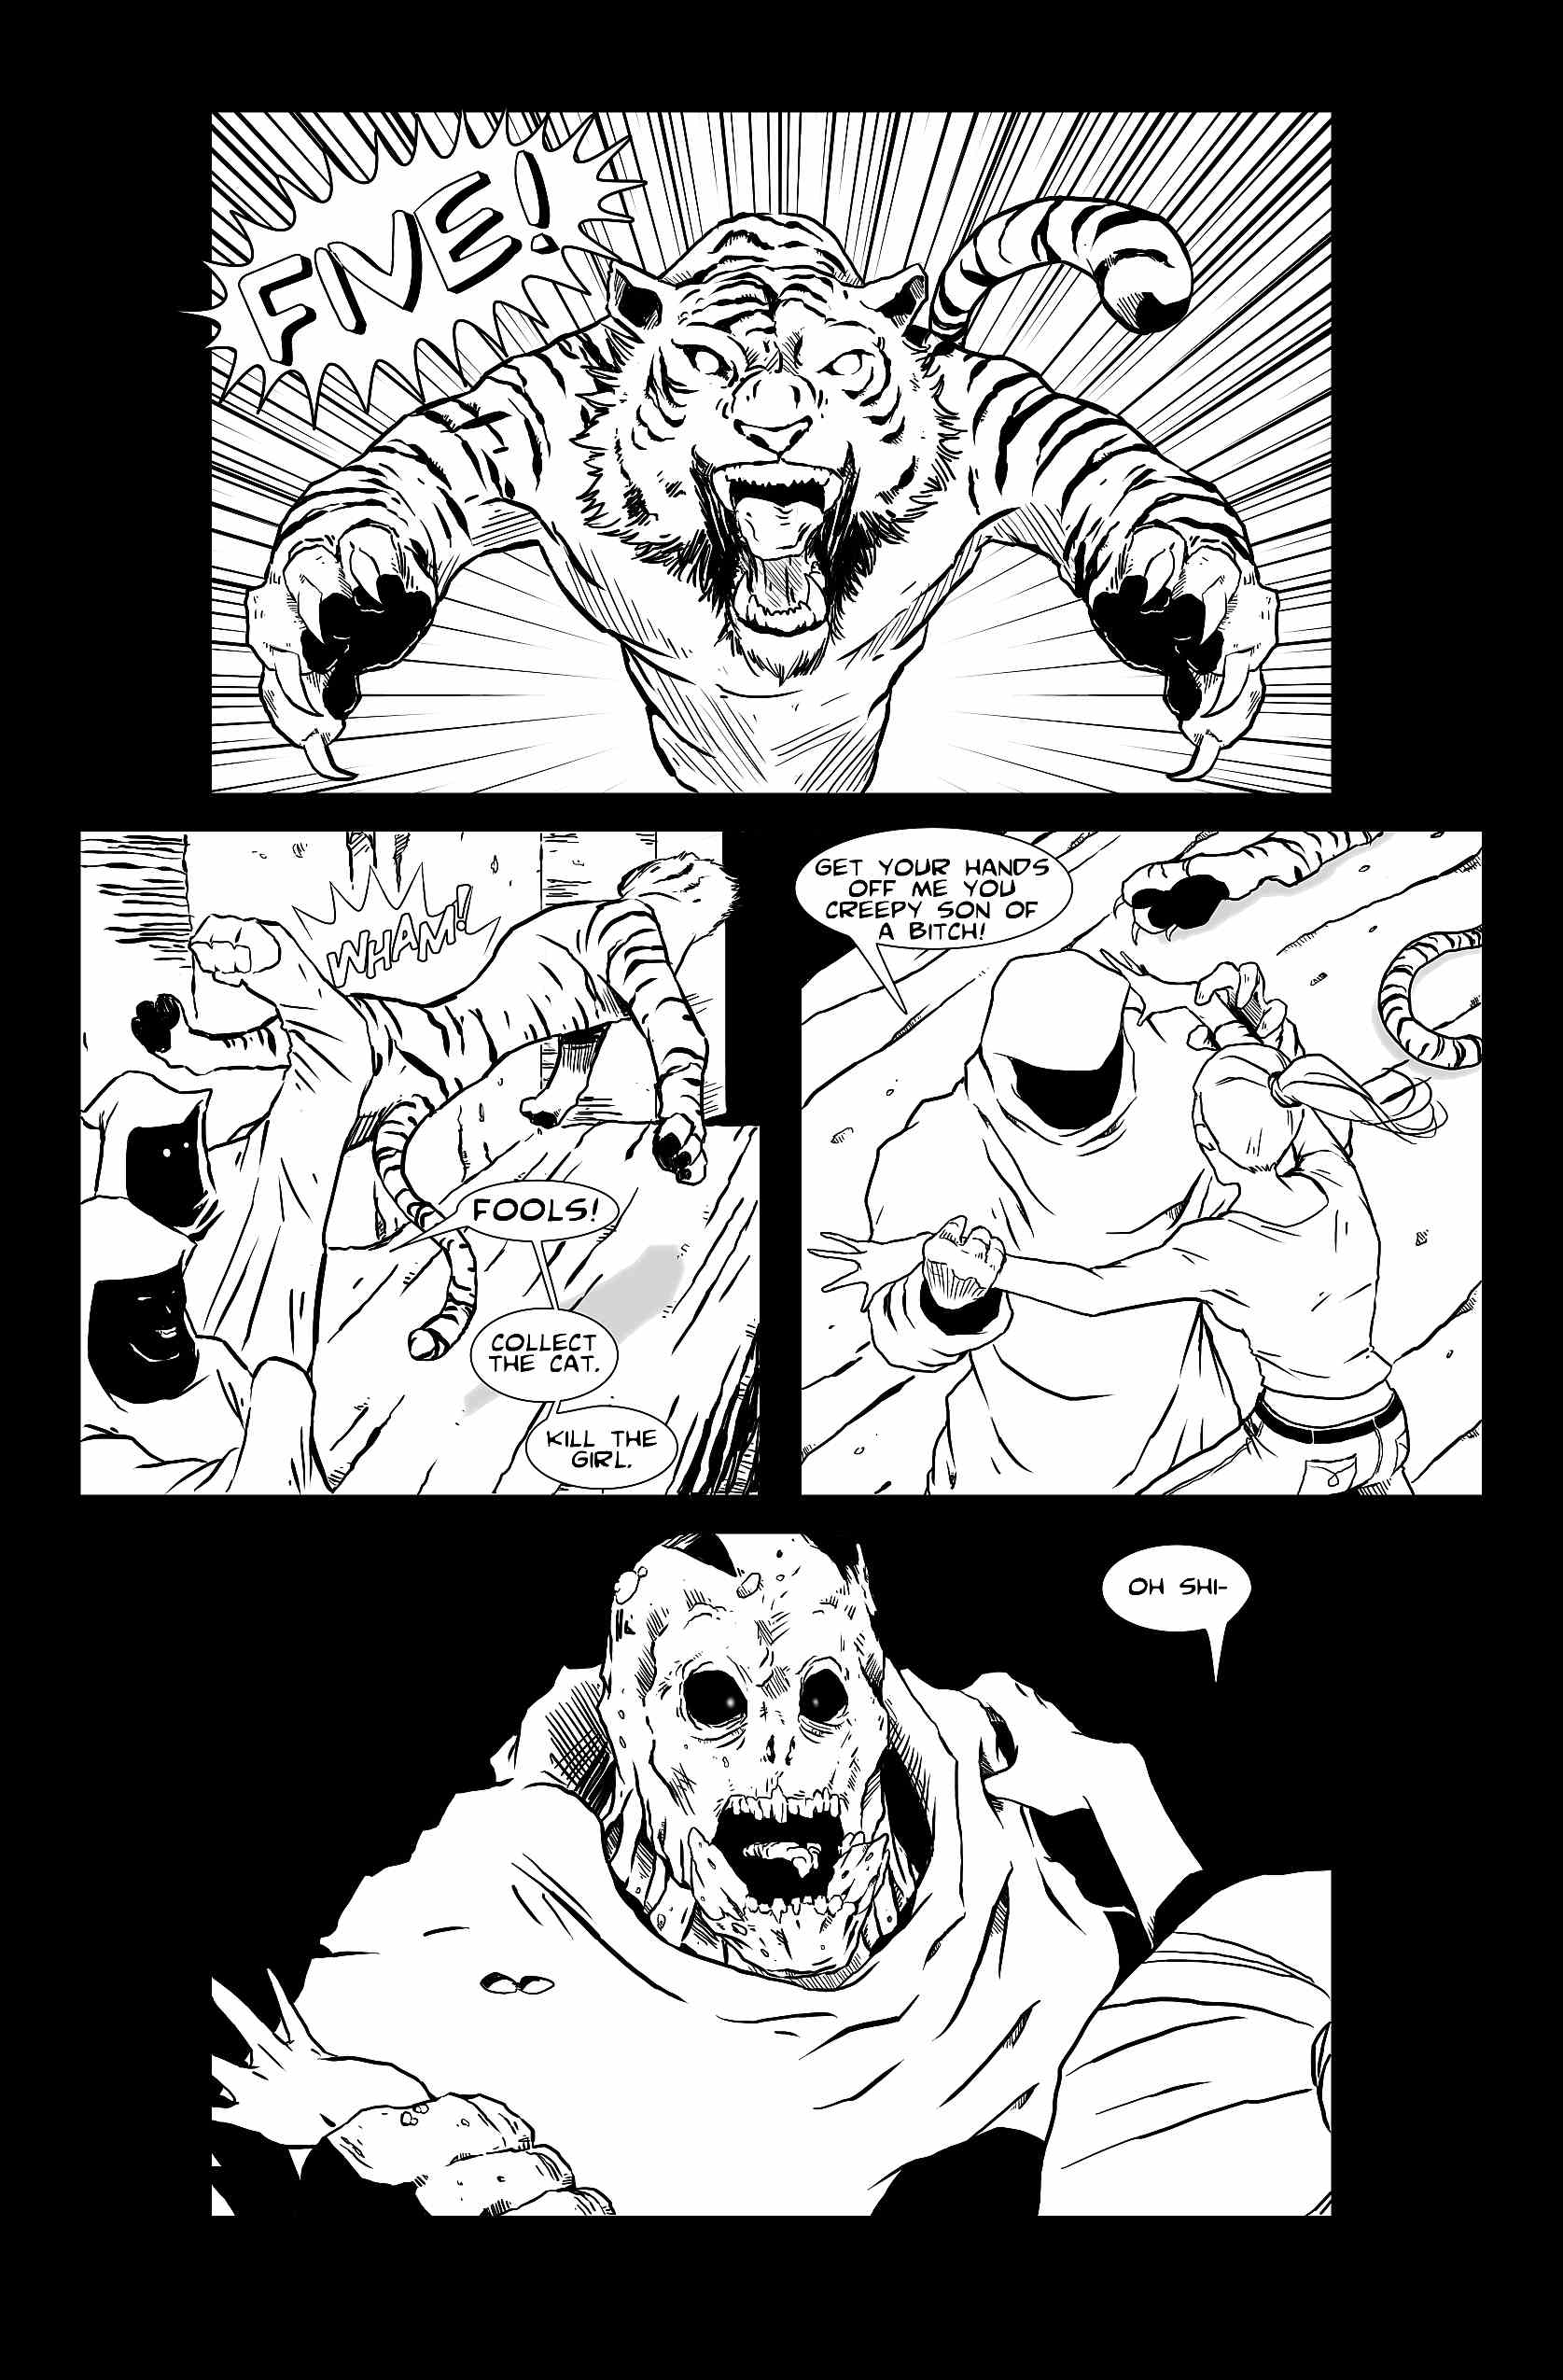 Let's Just Be Foes (issue 1, page 13)